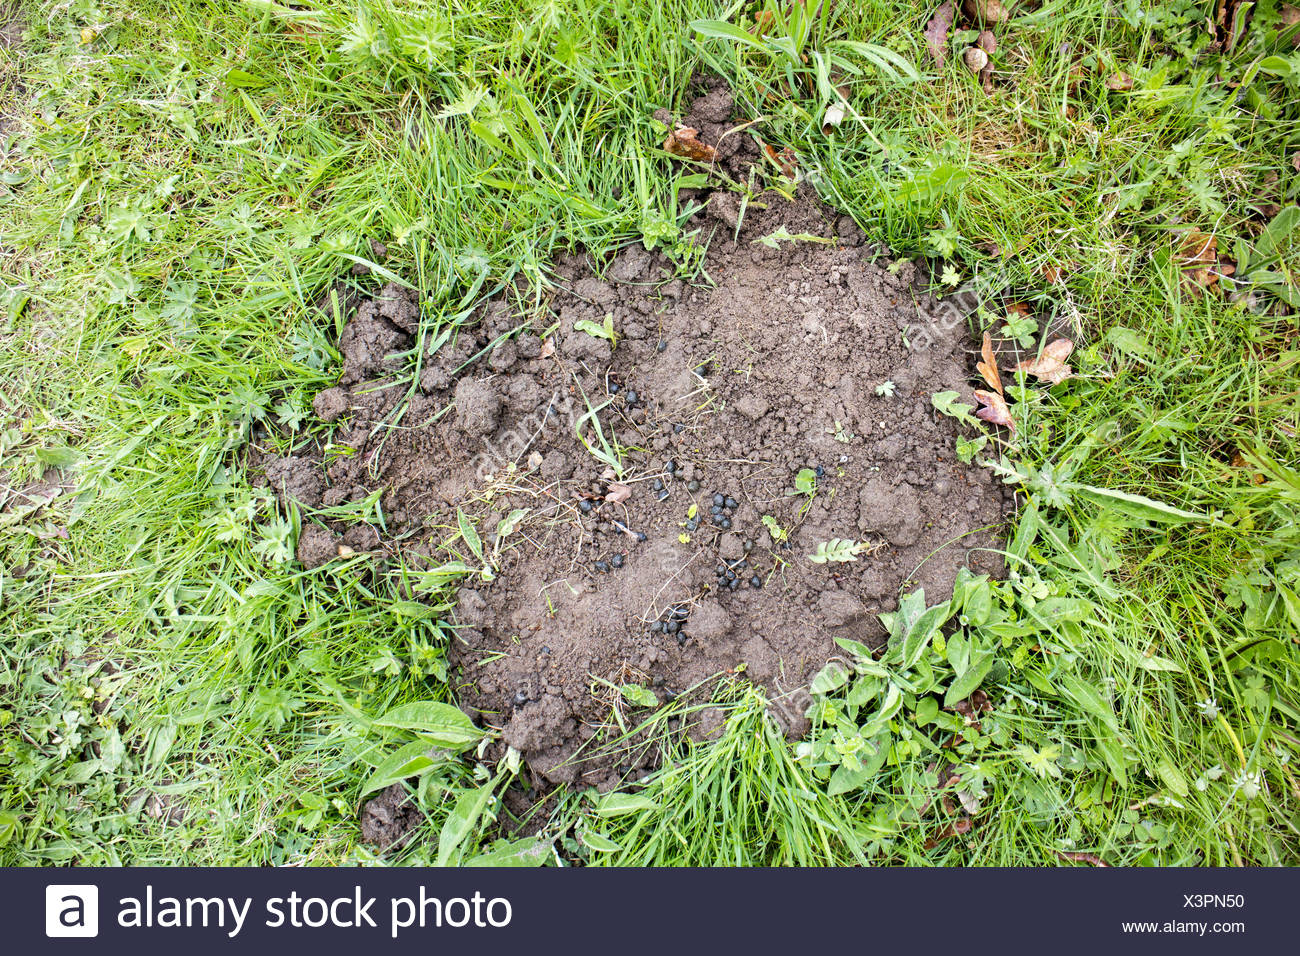 Rabbit Droppings Stock Photos & Rabbit Droppings Stock